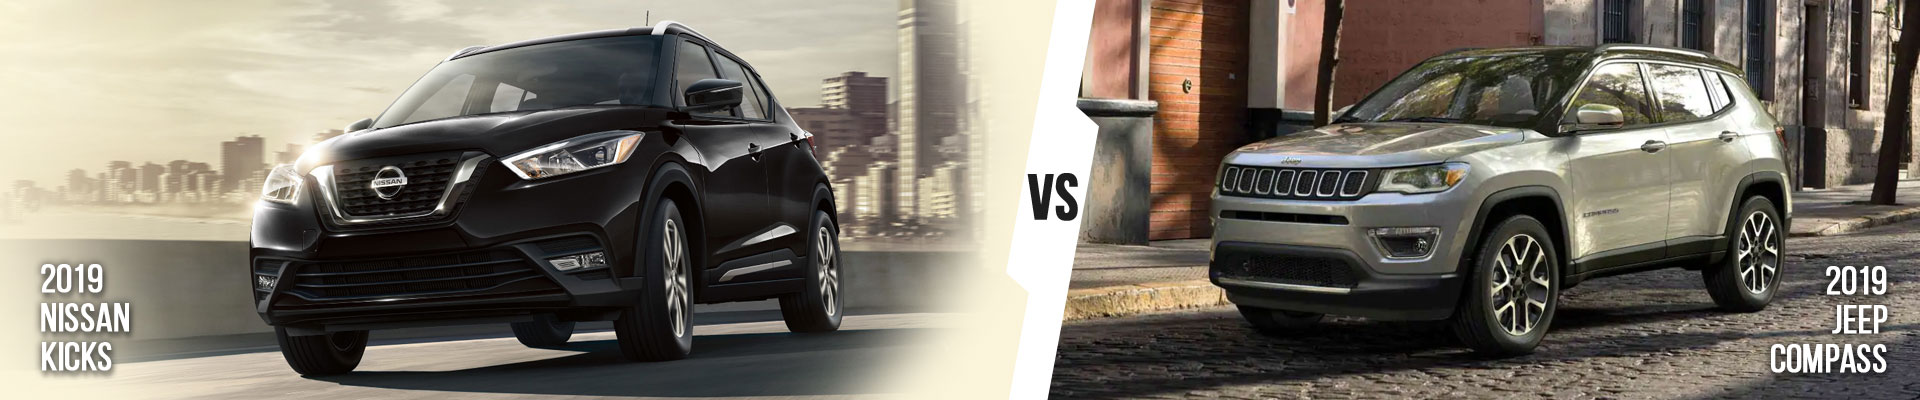 See The Differences Between The Nissan Kicks & Jeep Compass In Fort Myers